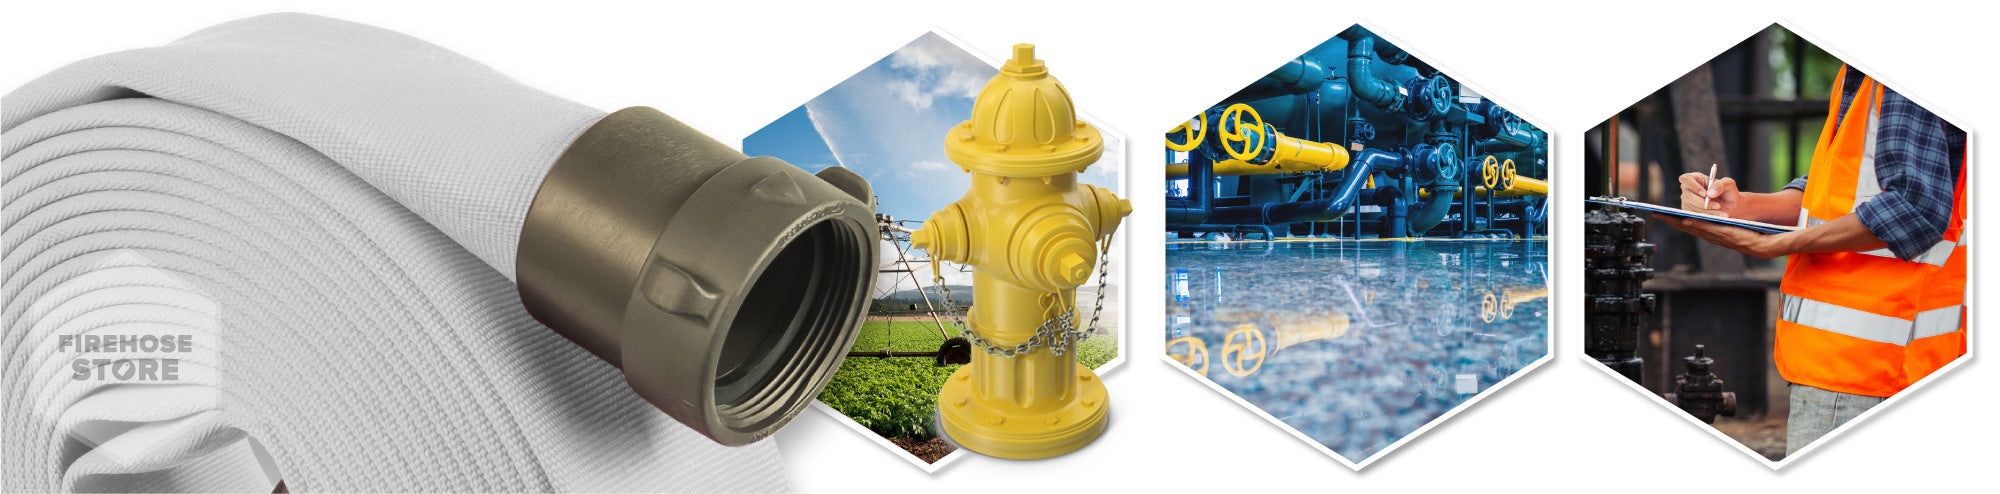 1-1-2 Inch x 25 Feet Fire Hydrant Hose Graphic Overview